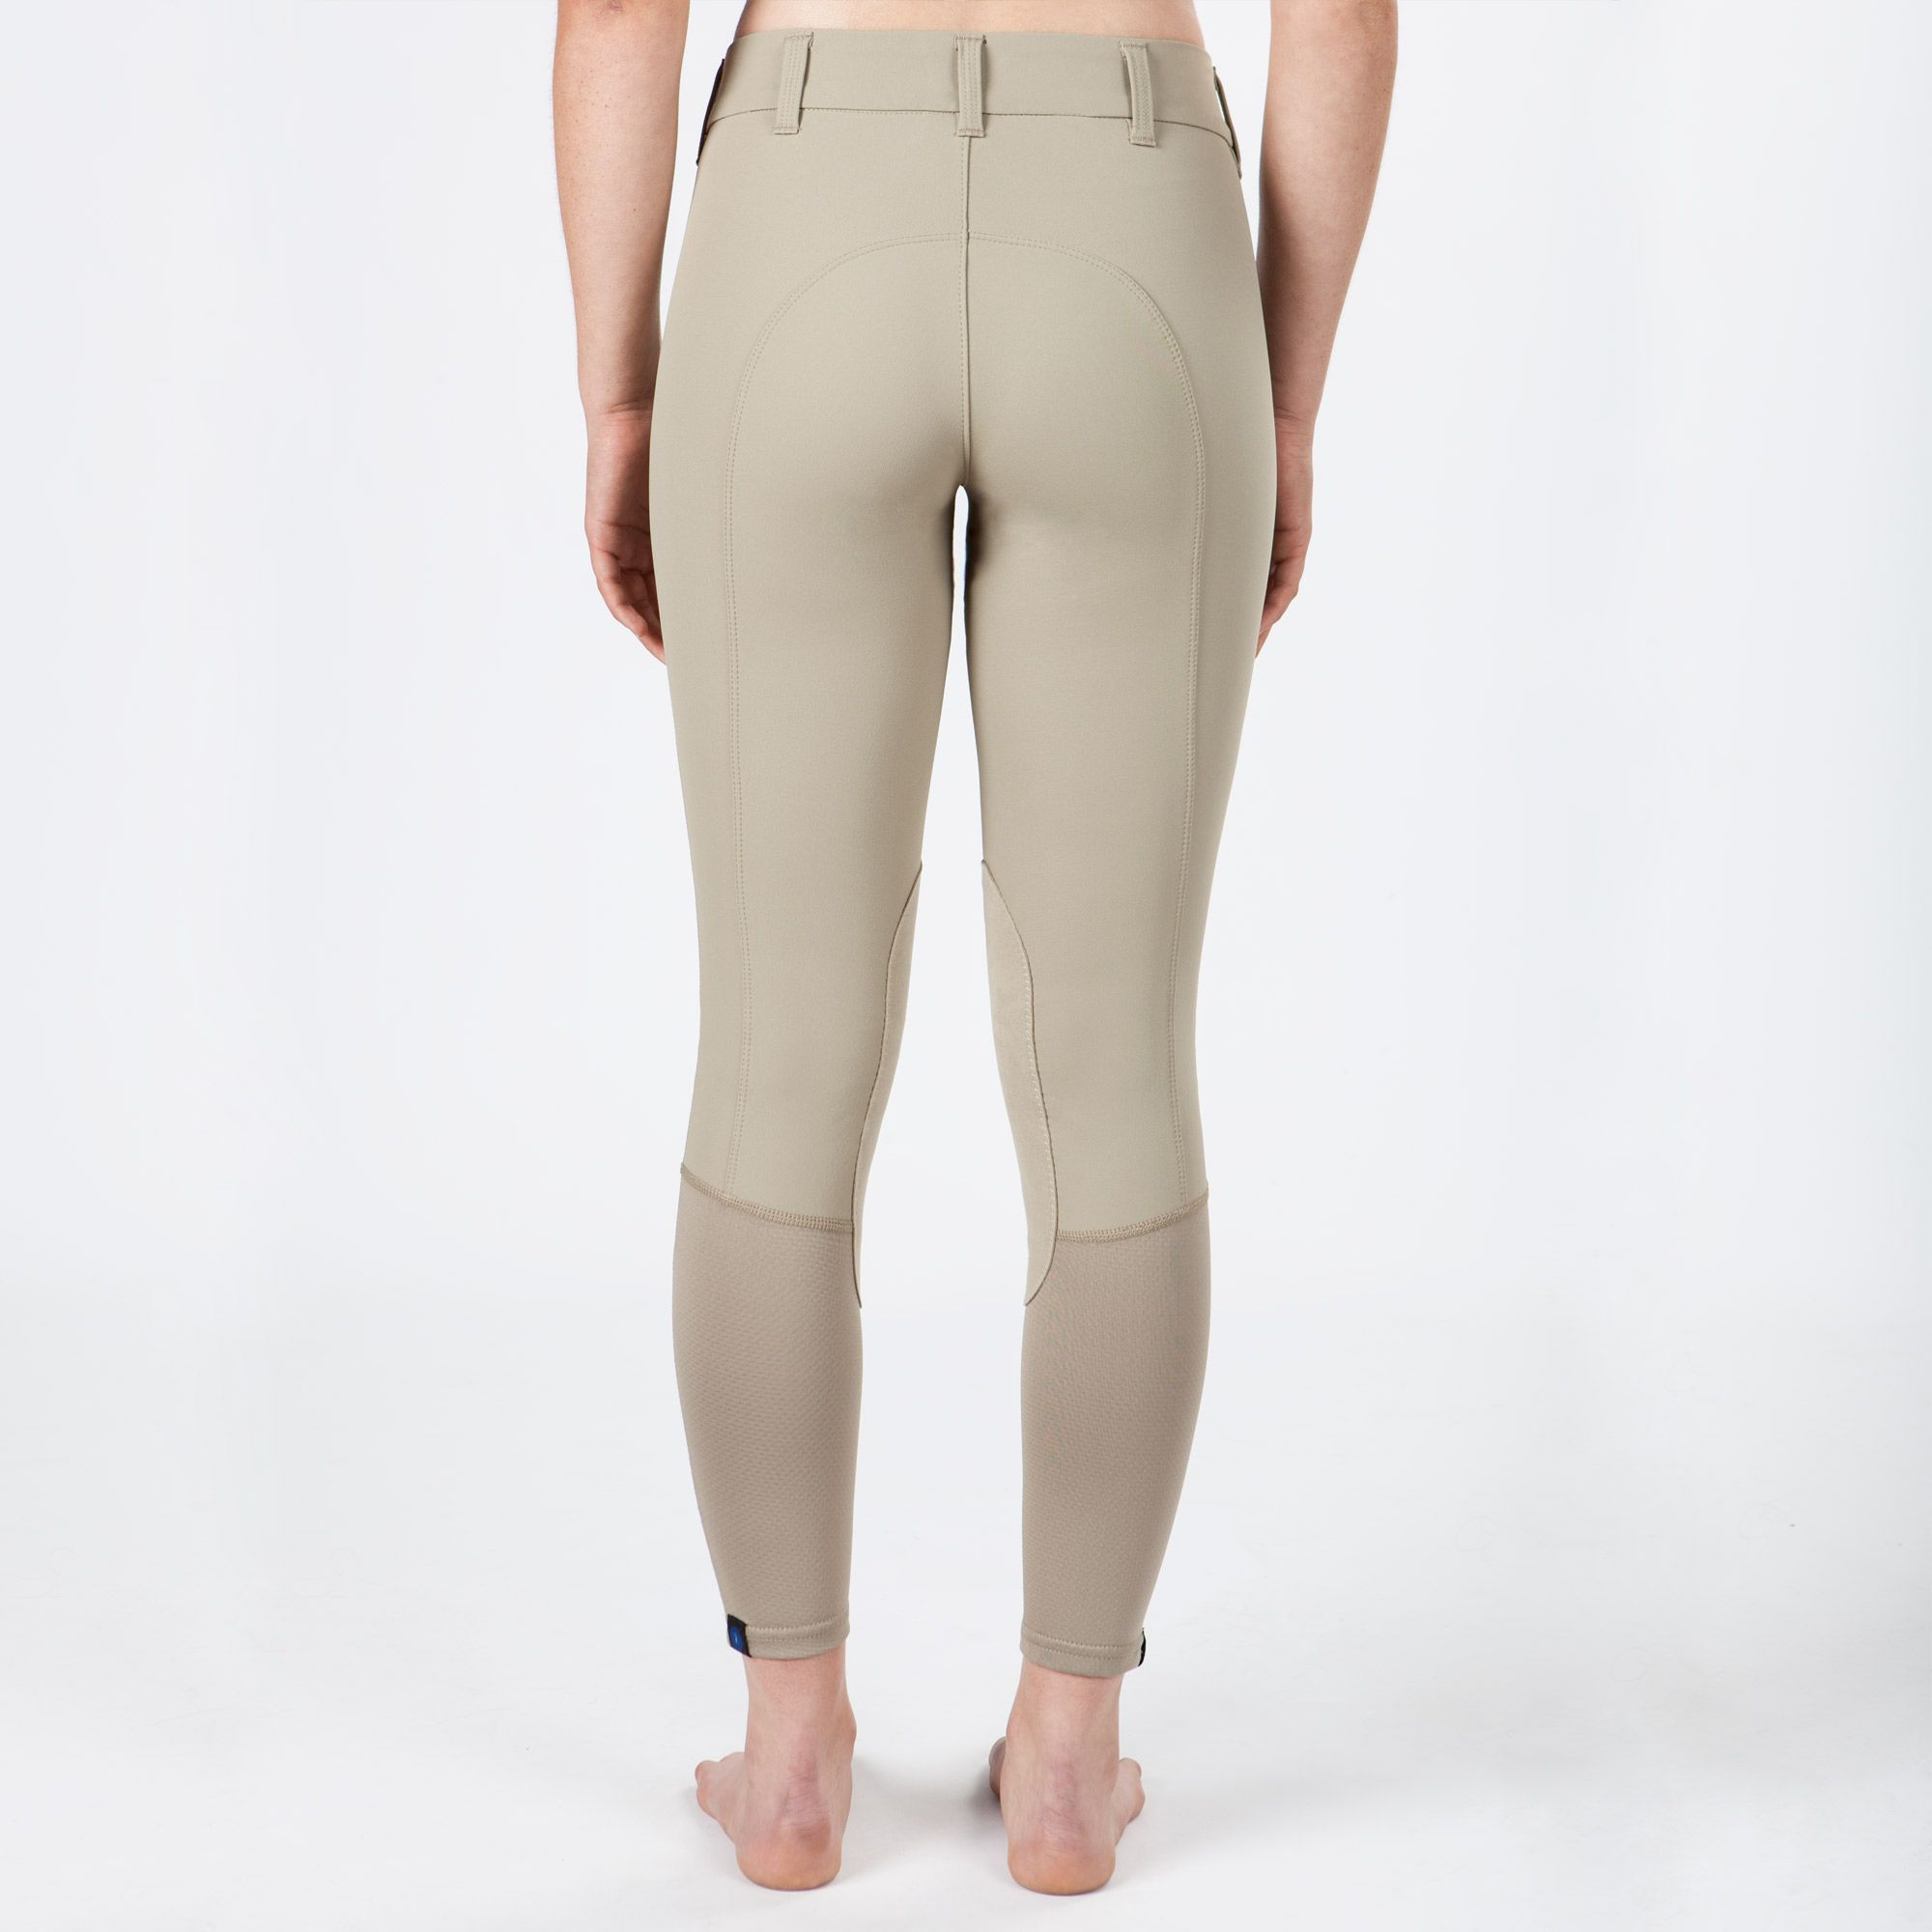 Irideon-Children-039-s-Hampshire-Knee-Patch-Riding-Breeches-with-Euro-Seat-Styling miniature 8